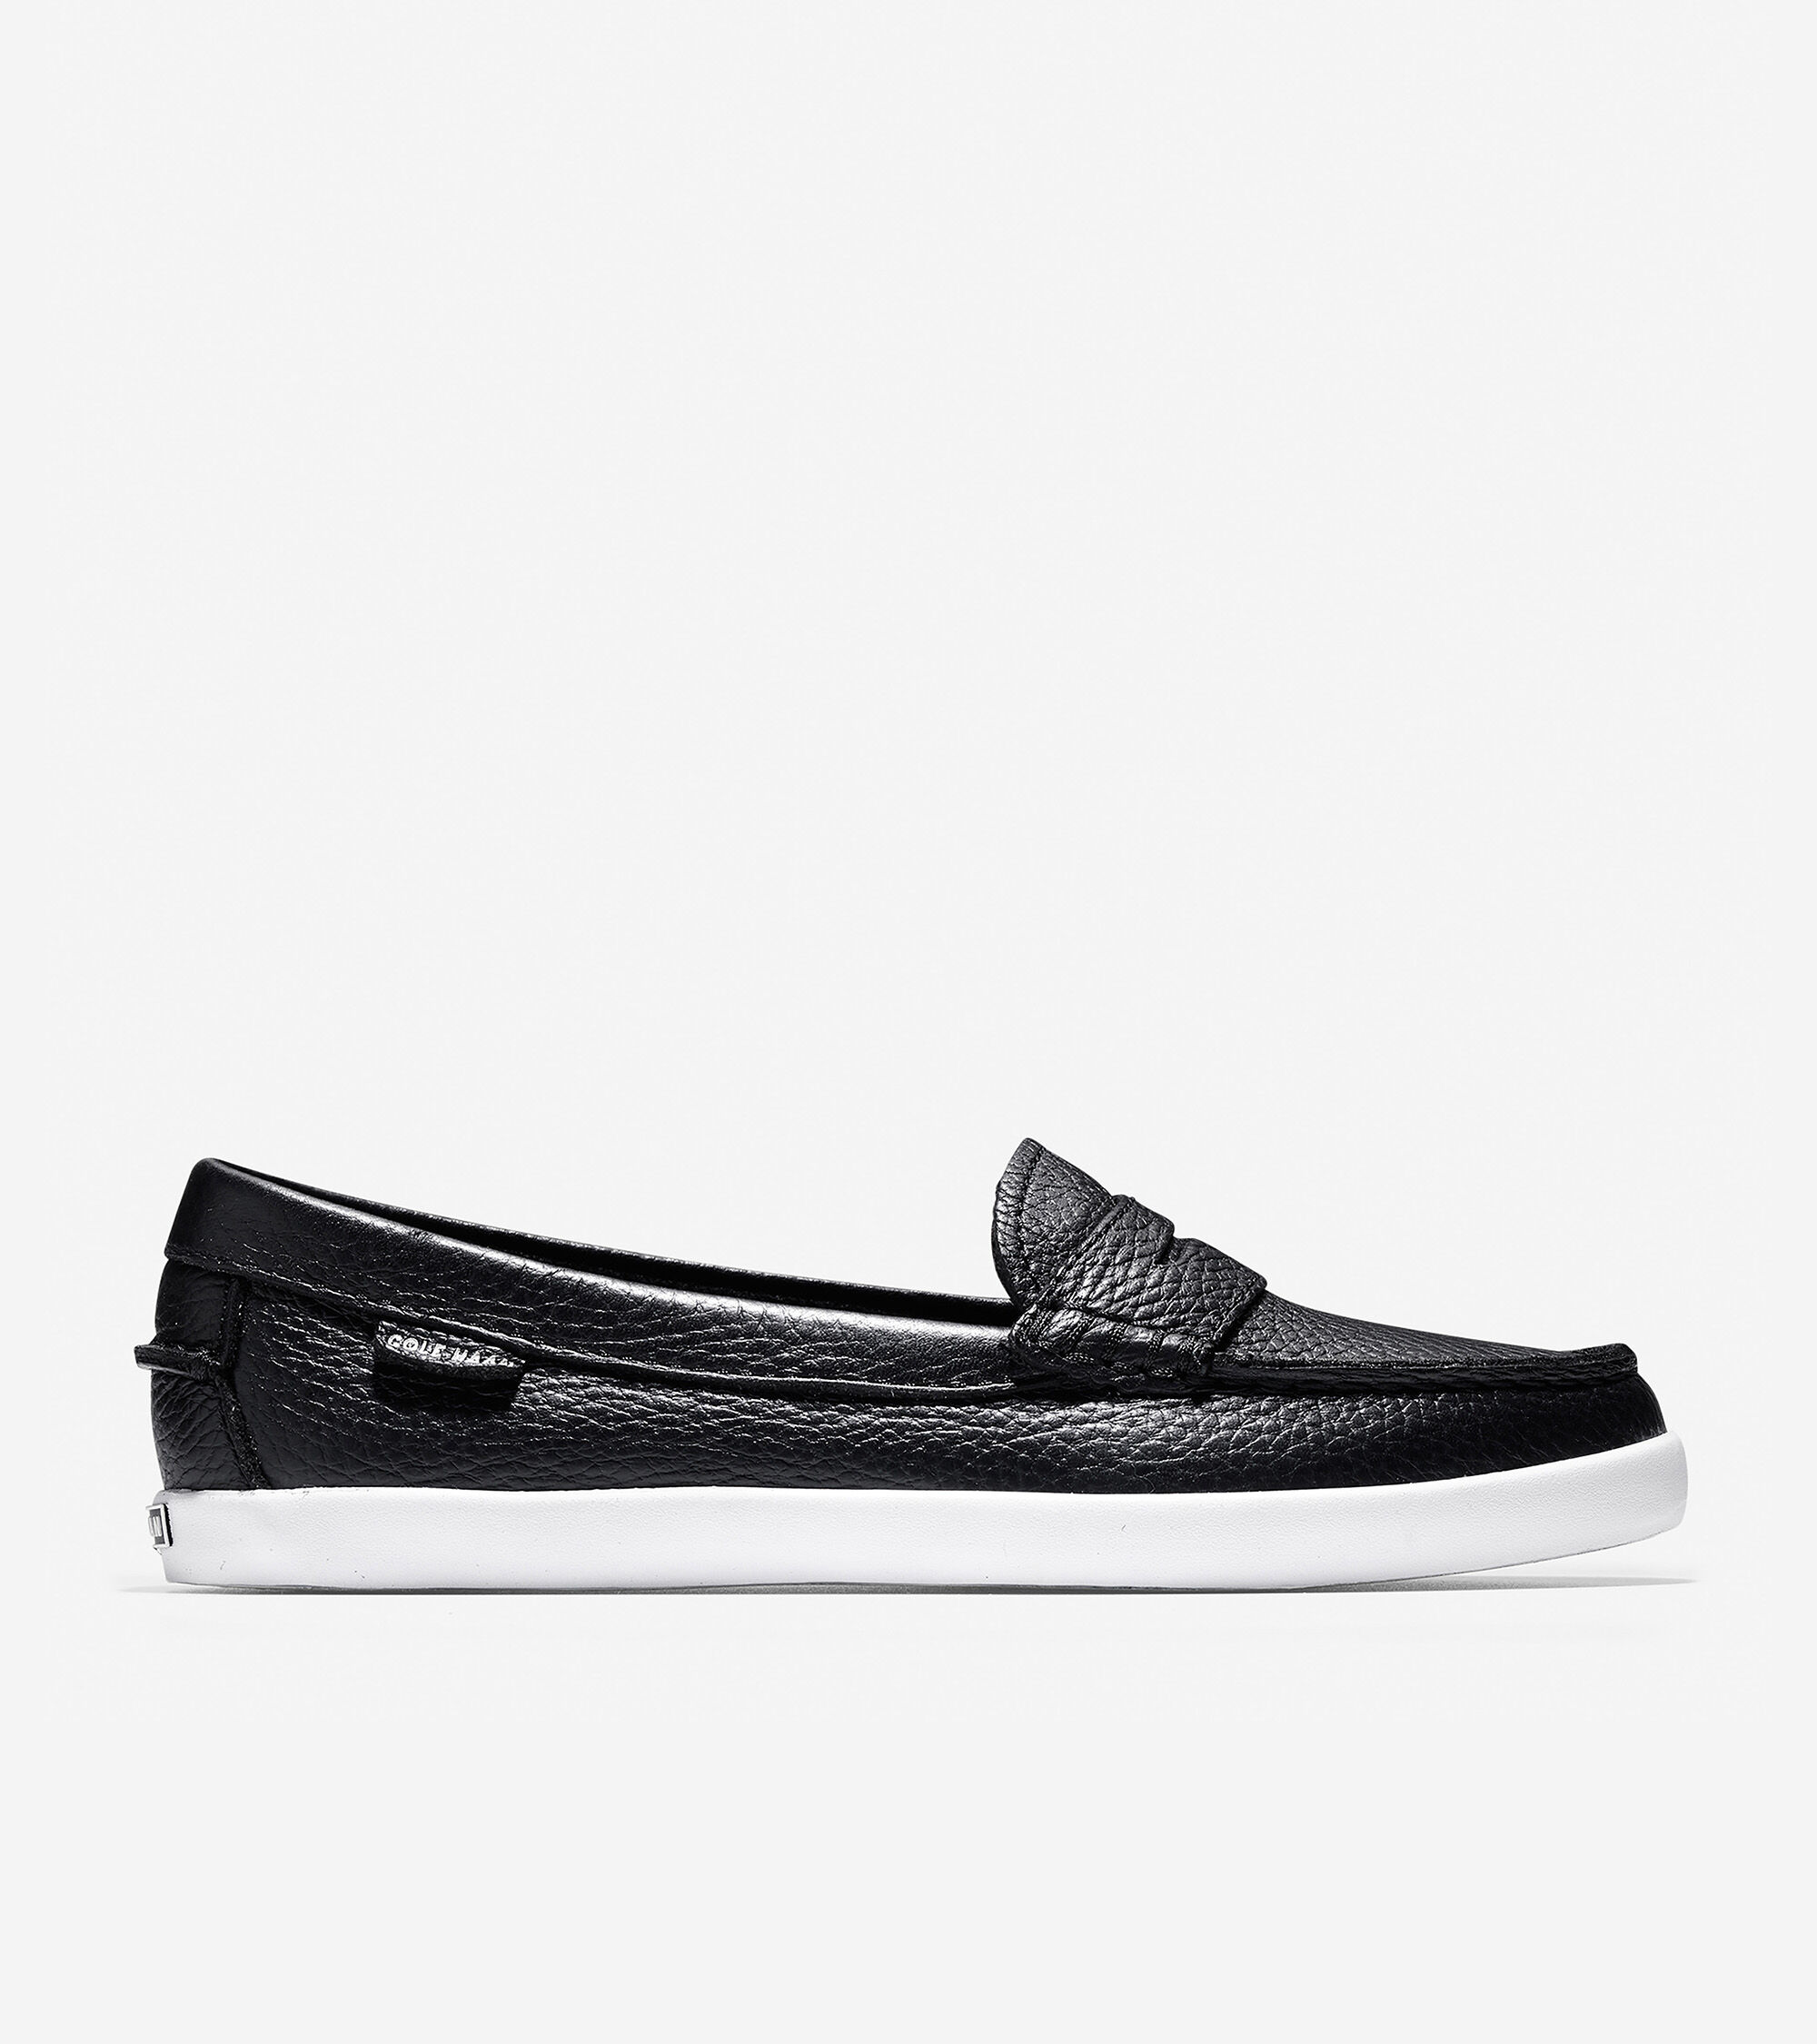 Women's Nantucket Loafer in Black Leather | Cole Haan US